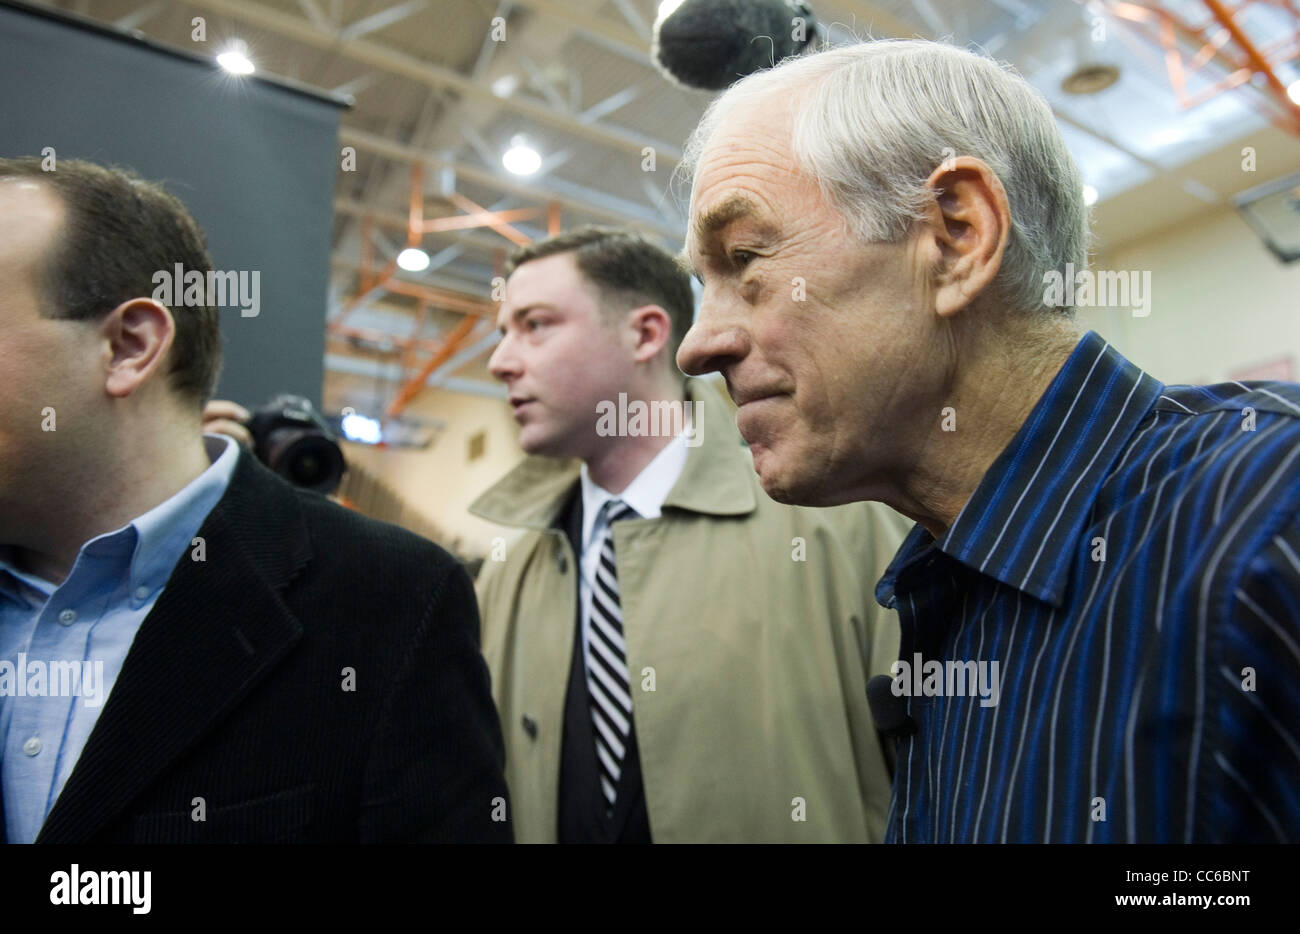 Republican presidential nominee candidate Ron Paul at campaign event in West Des Moines, Iowa - Stock Image